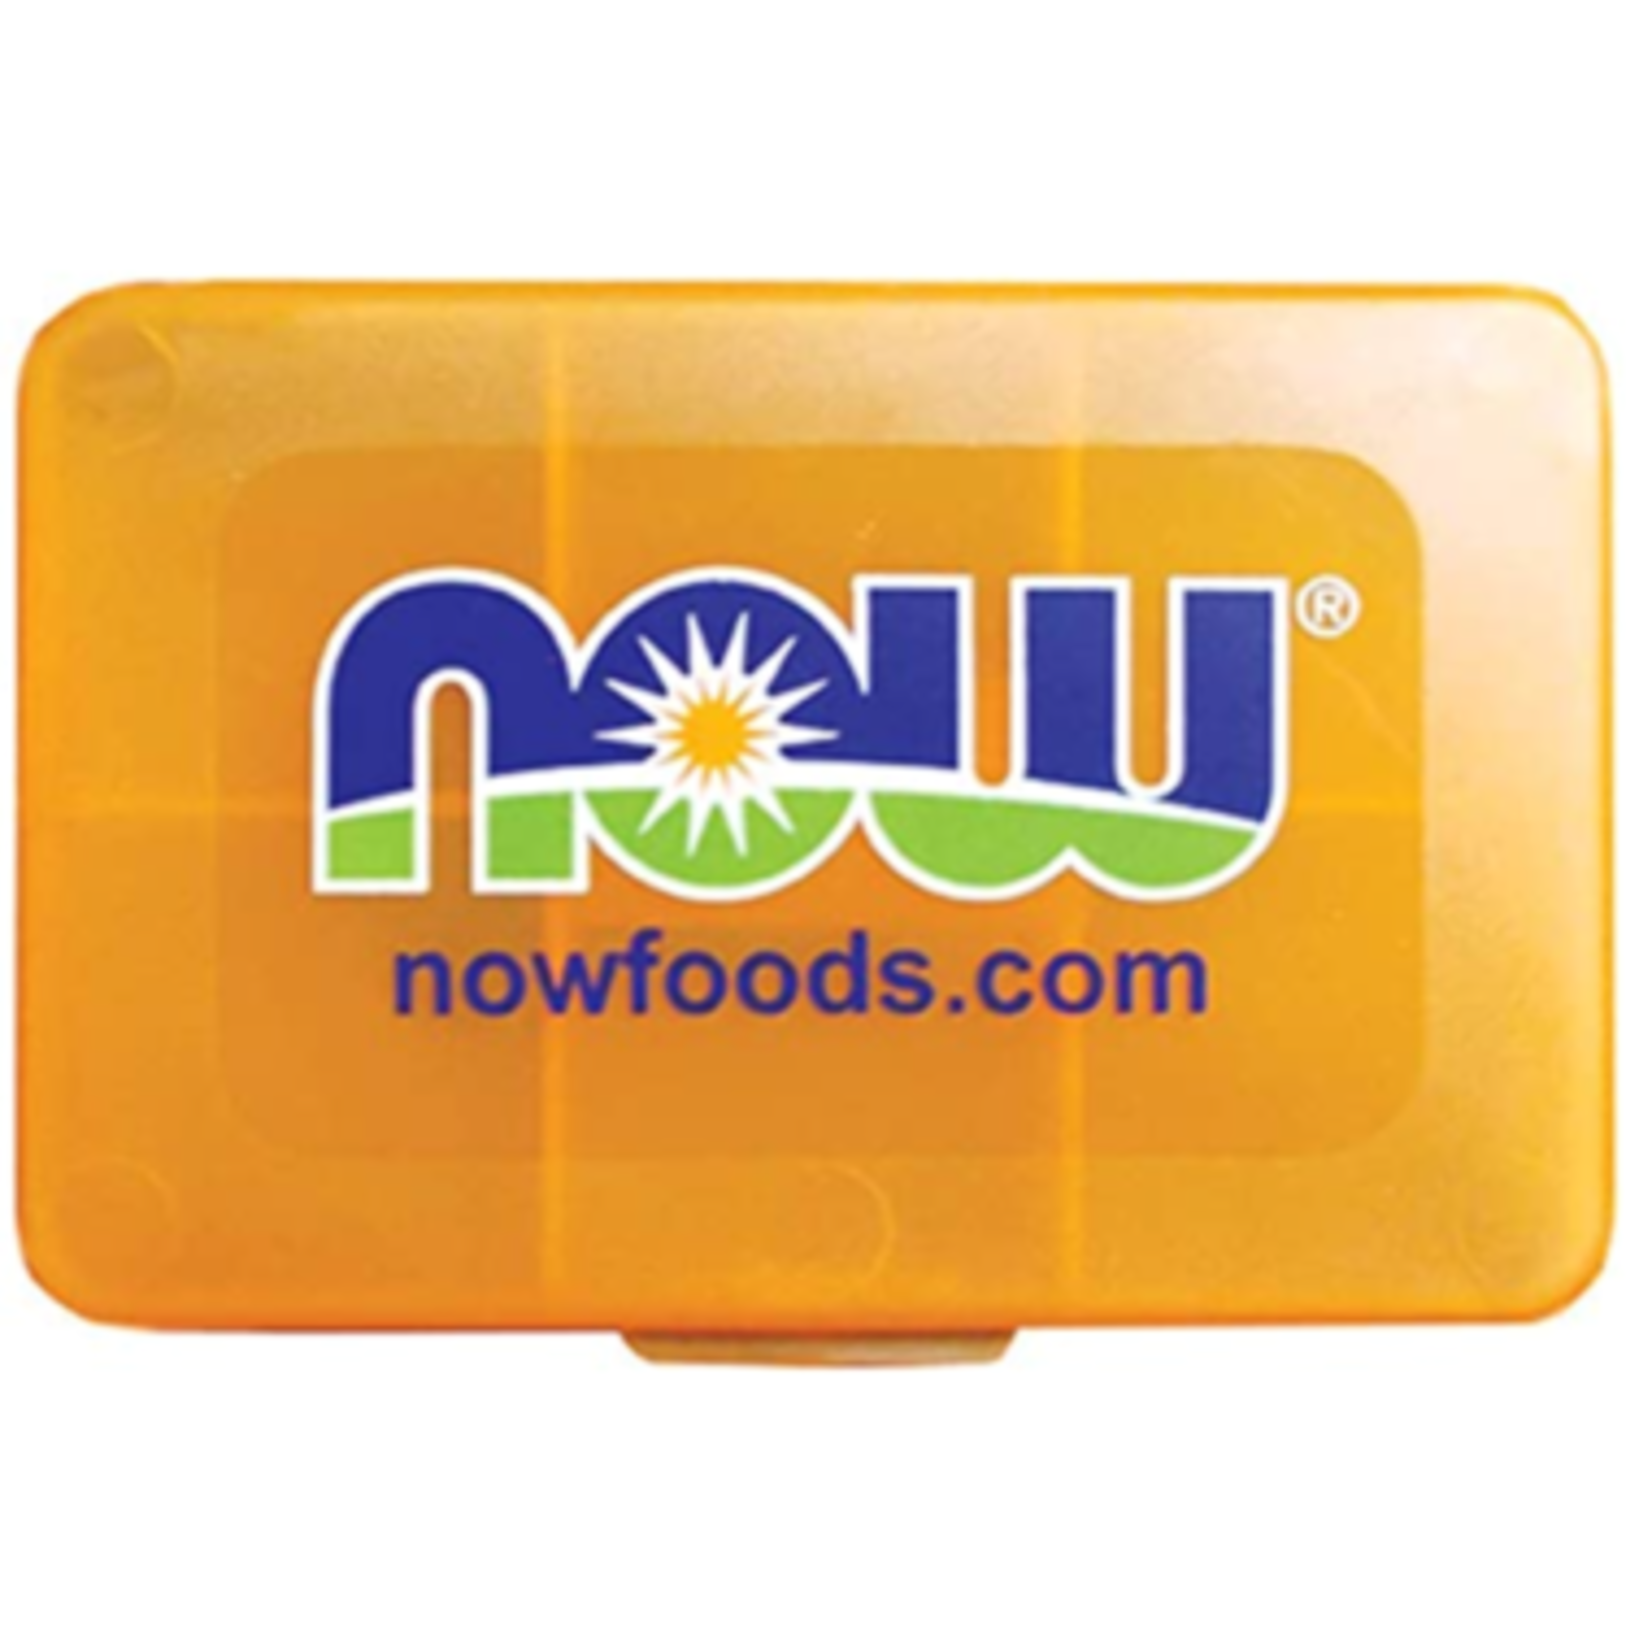 Now Now Supplement Case